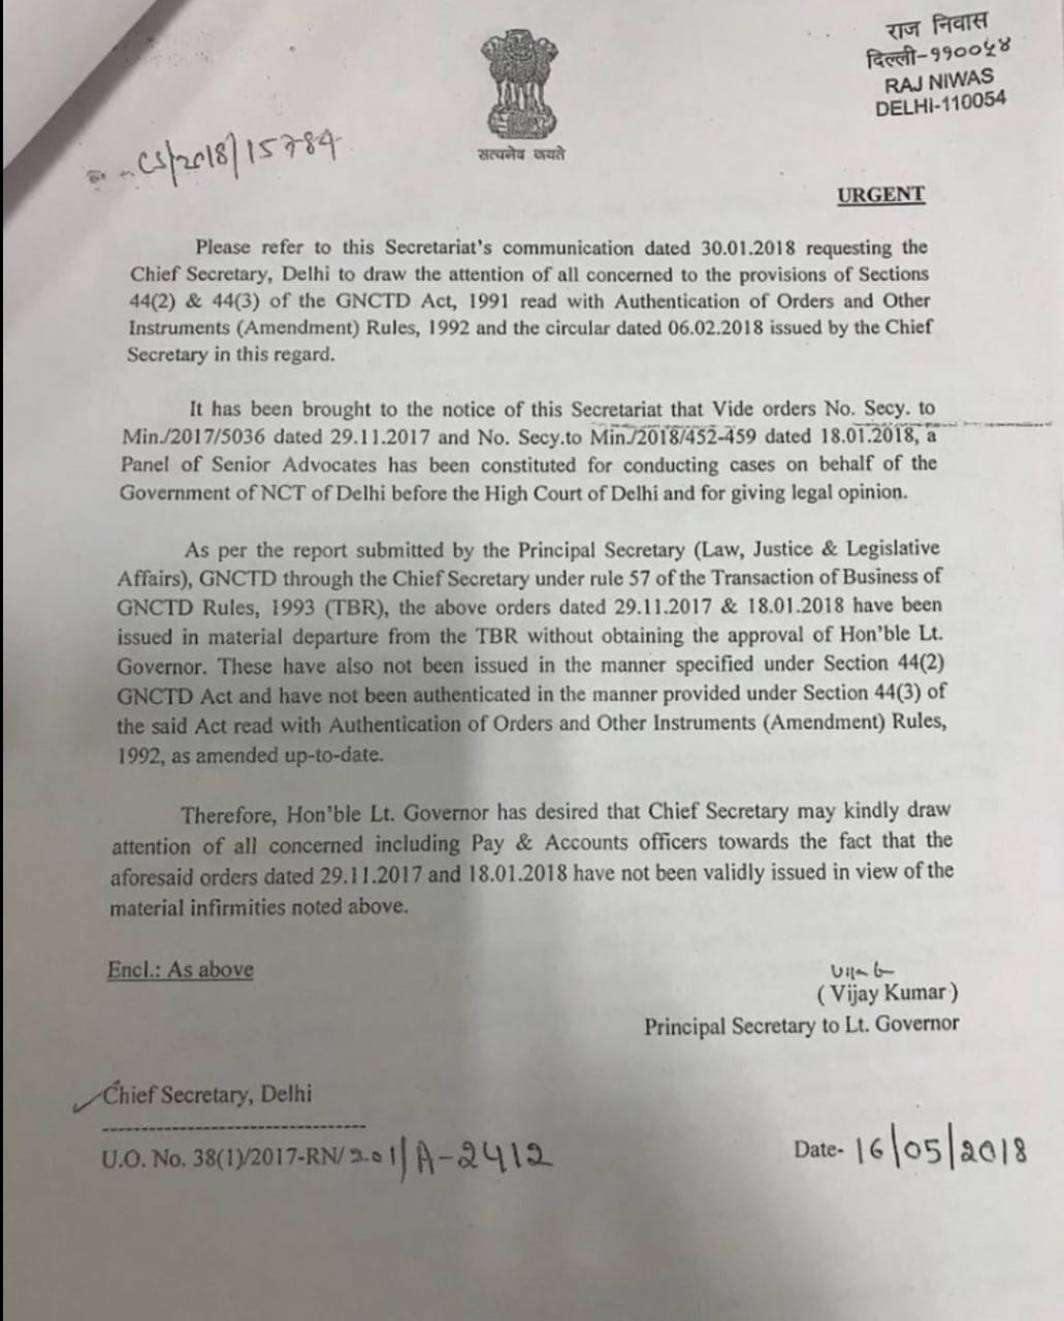 Delhi Lt Governor now objects to government's lawyers' panel